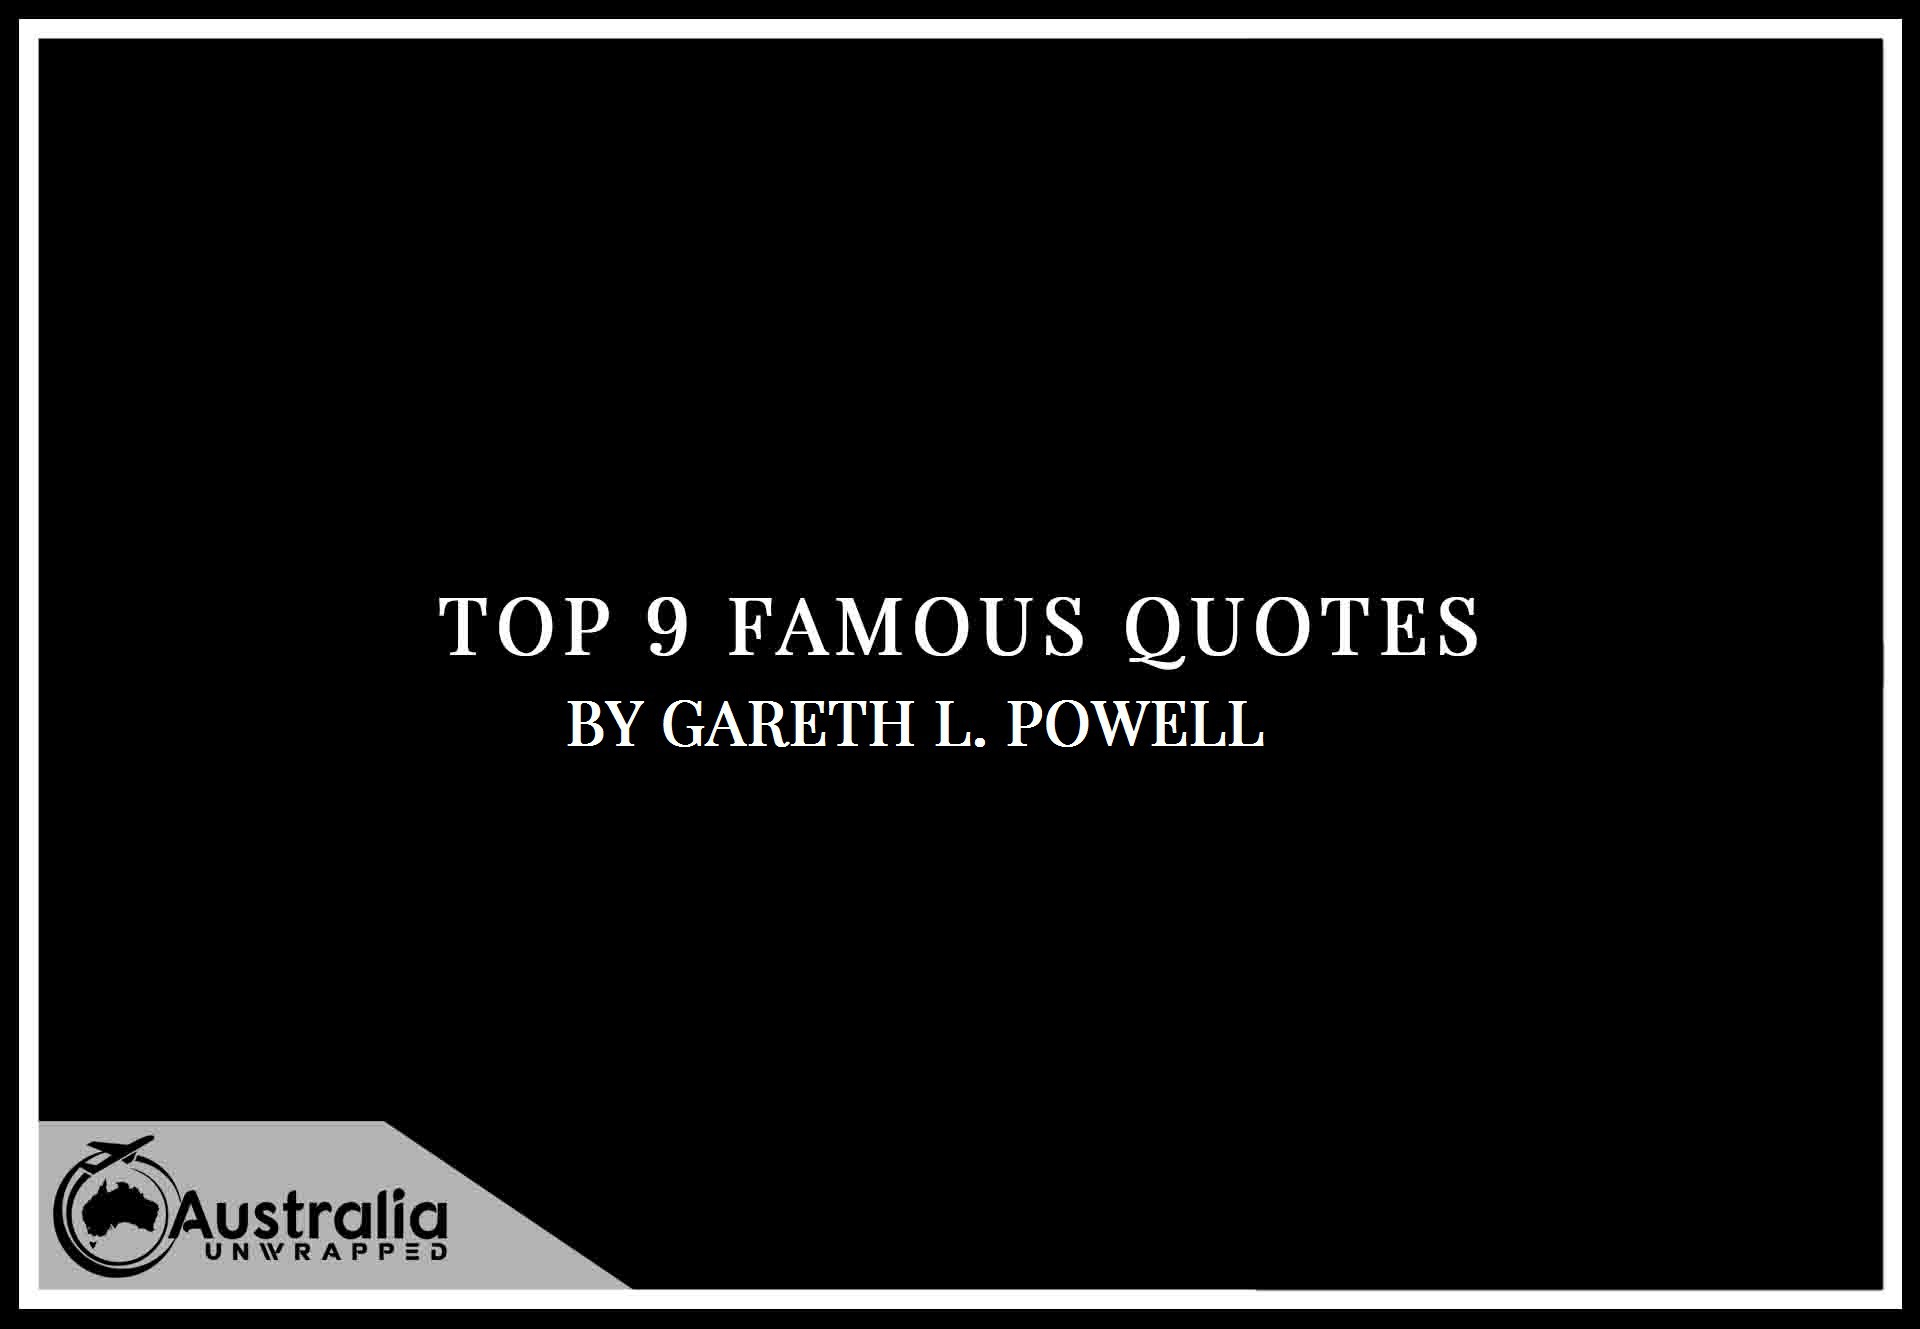 Gareth L. Powell's Top 9 Popular and Famous Quotes